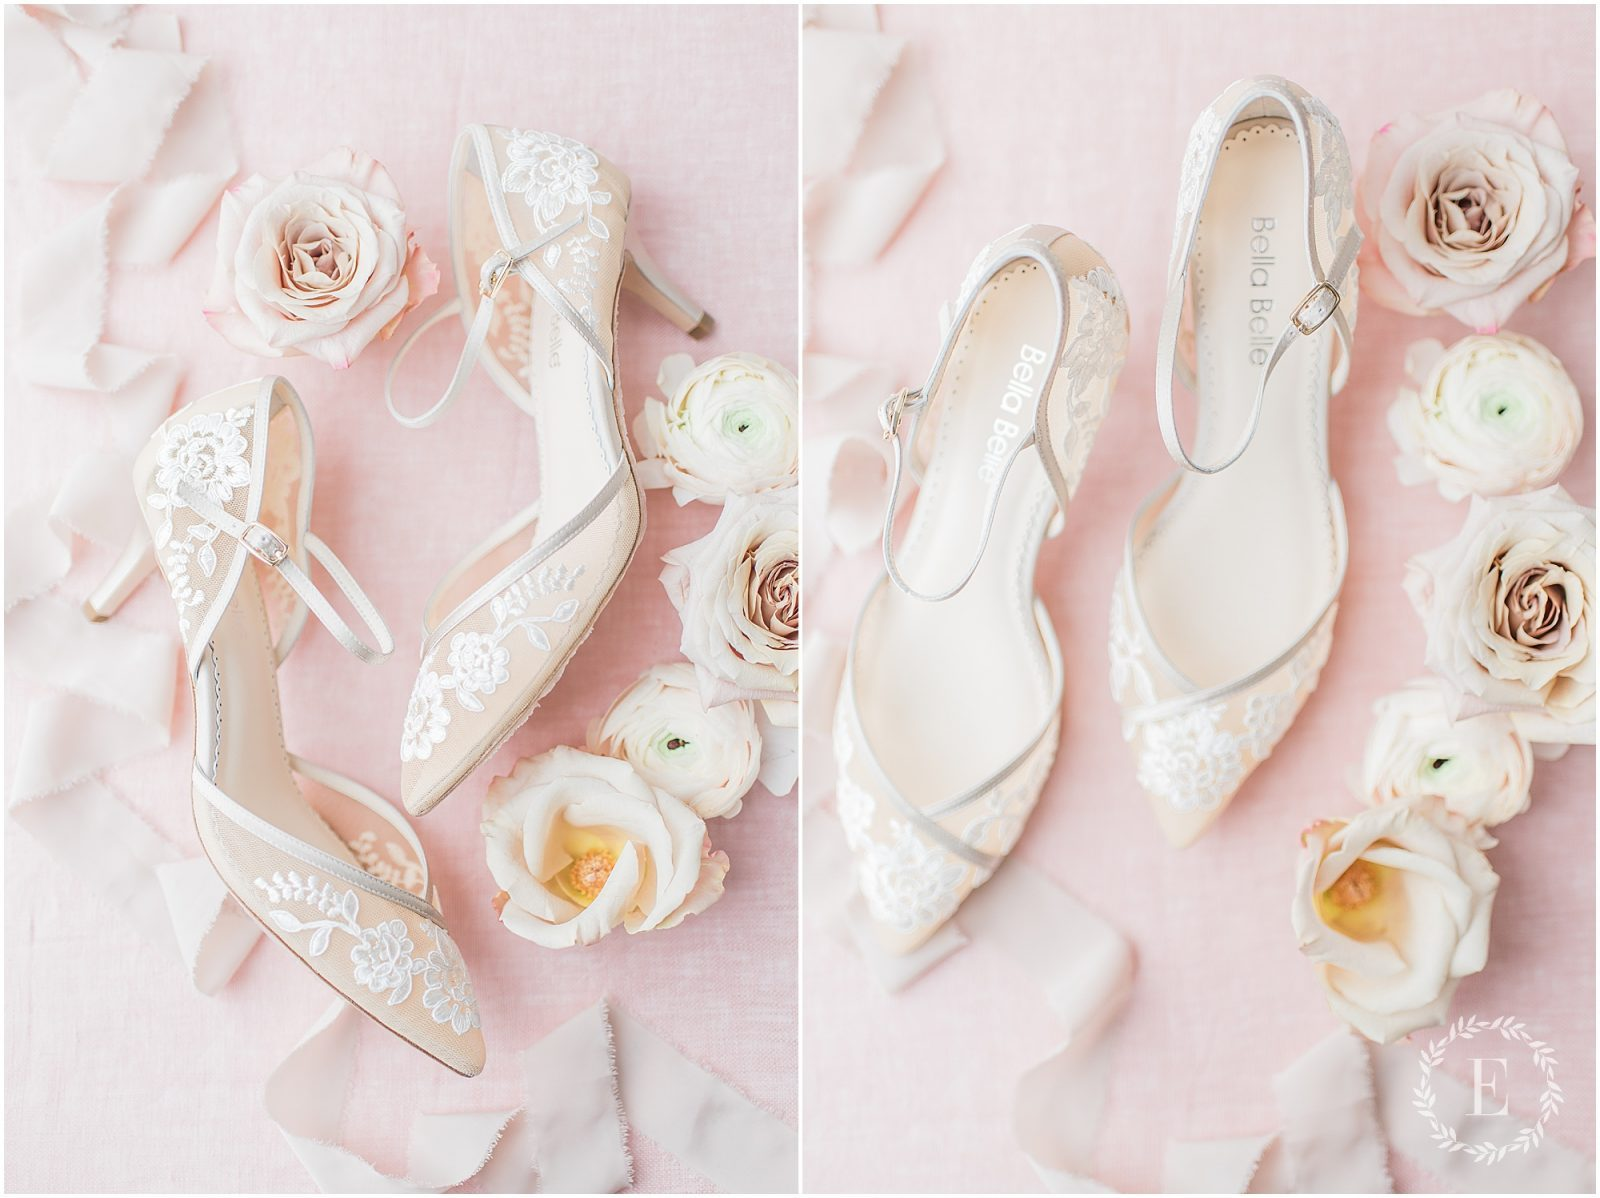 22 - Bella Belle for Fairy Dreams Bridal - lace bridal shoes ottawa